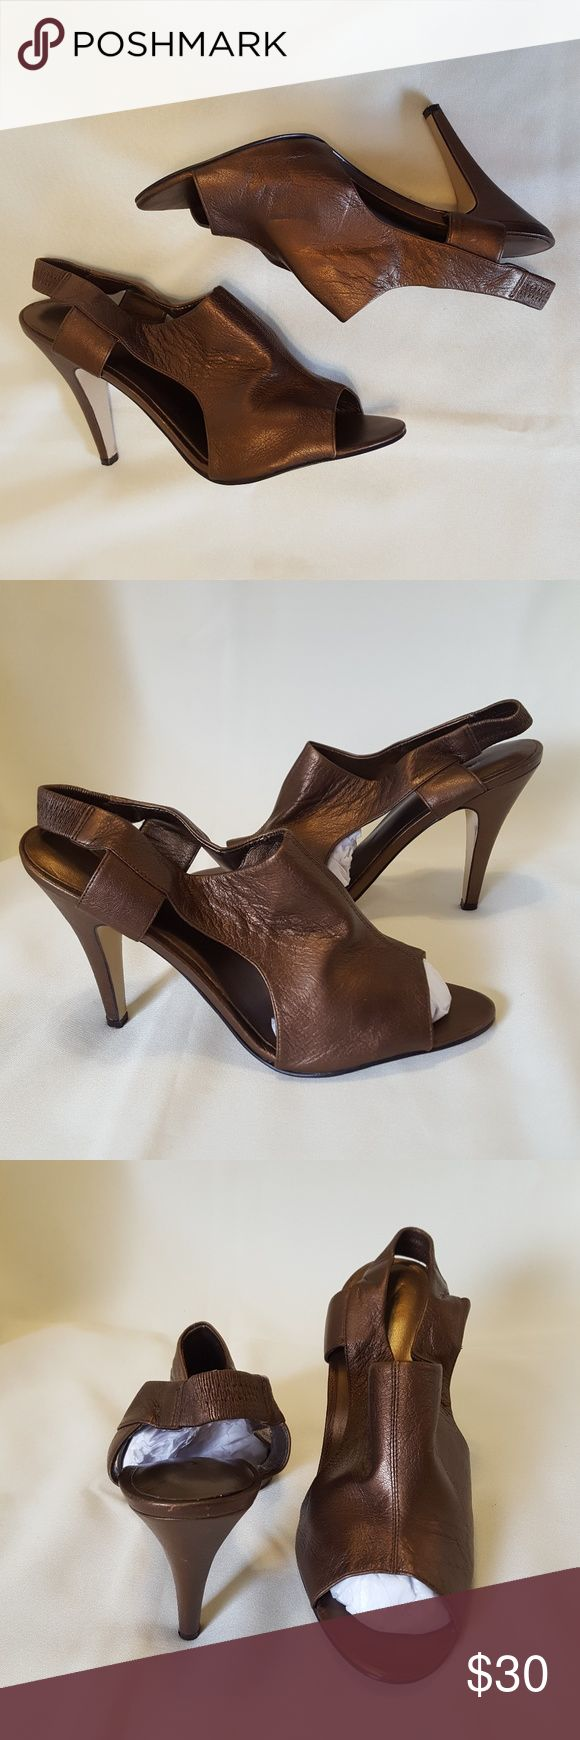 Nine West Bronze Heels Size 8.5. Leather Nine West bronze heels that measure at about 4 inches (see photo 6). There is some wear in the back of the heels (shown in photo 5). The back of the straps are stretchy & comfortable. The smooth leather upper on these sexy heels is a beautiful metallic bronze! Nine West Shoes Heels